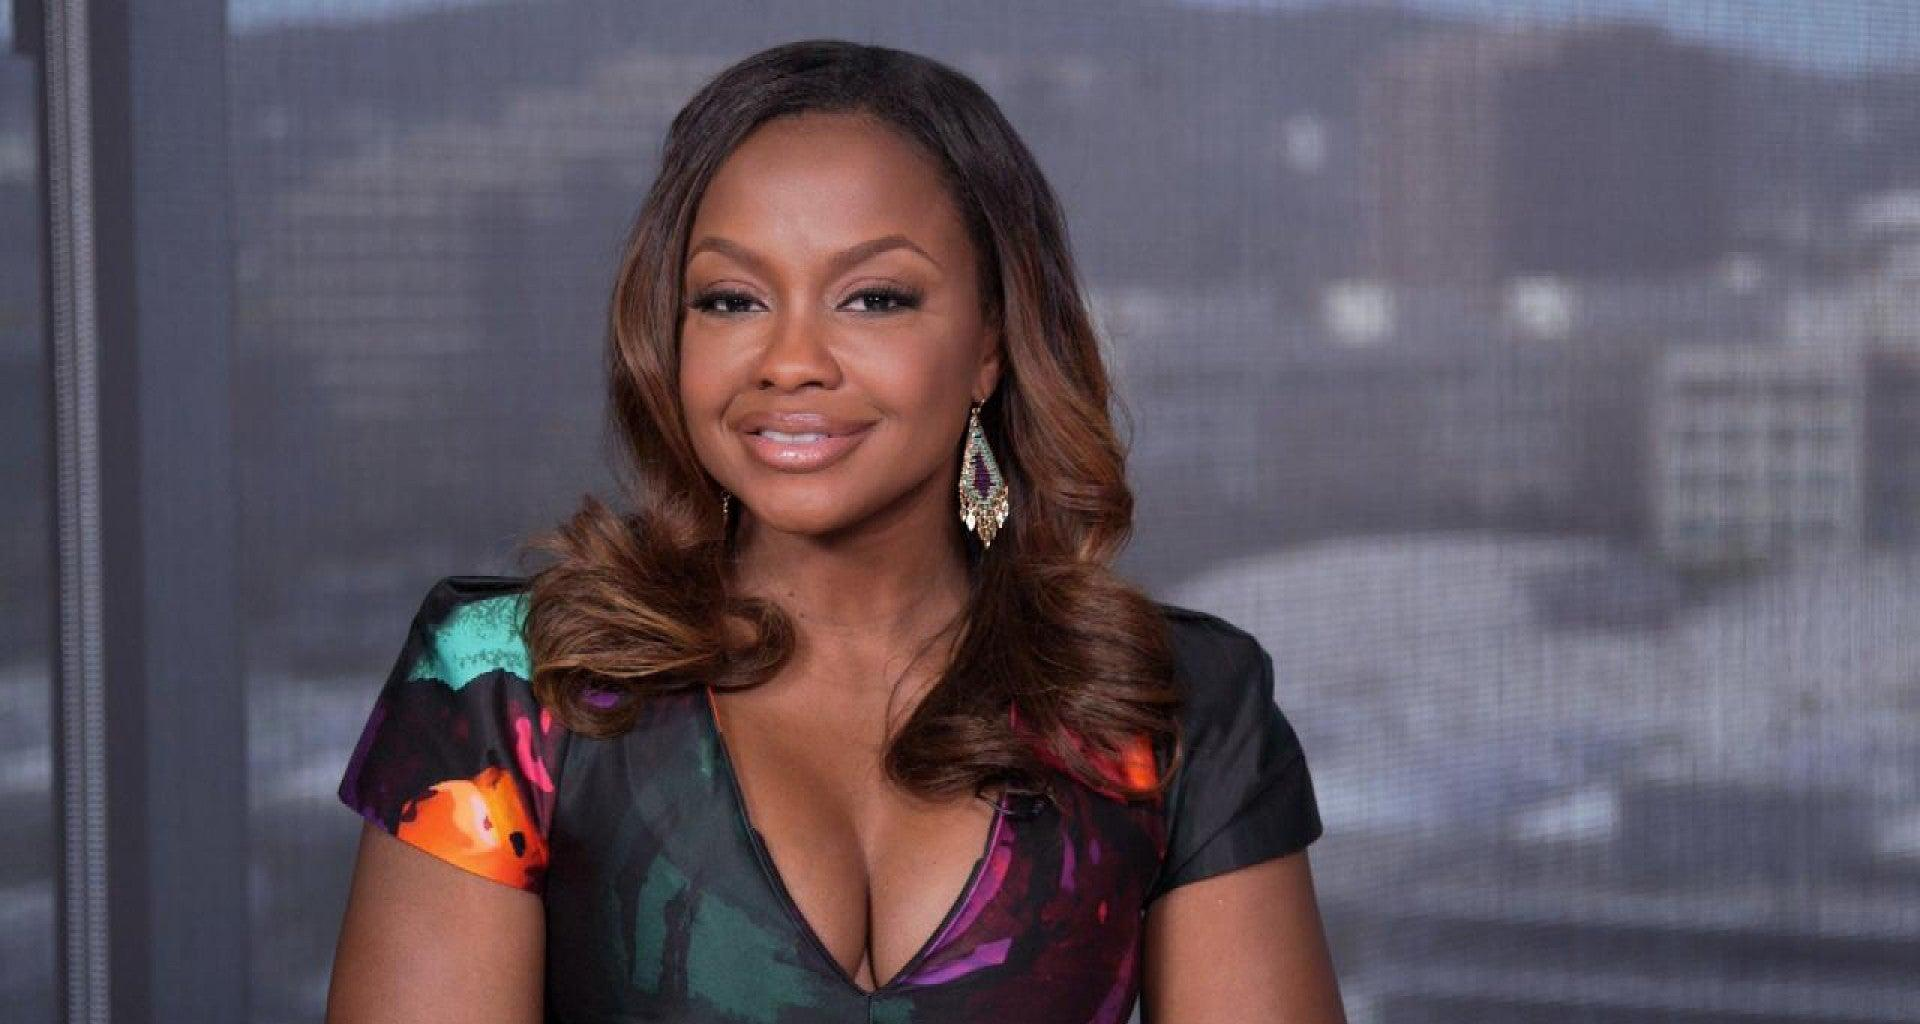 Phaedra Parks Shares A Few Words About 2020 And 2021 - See The Gorgeous Photos She Posted Along Her Message